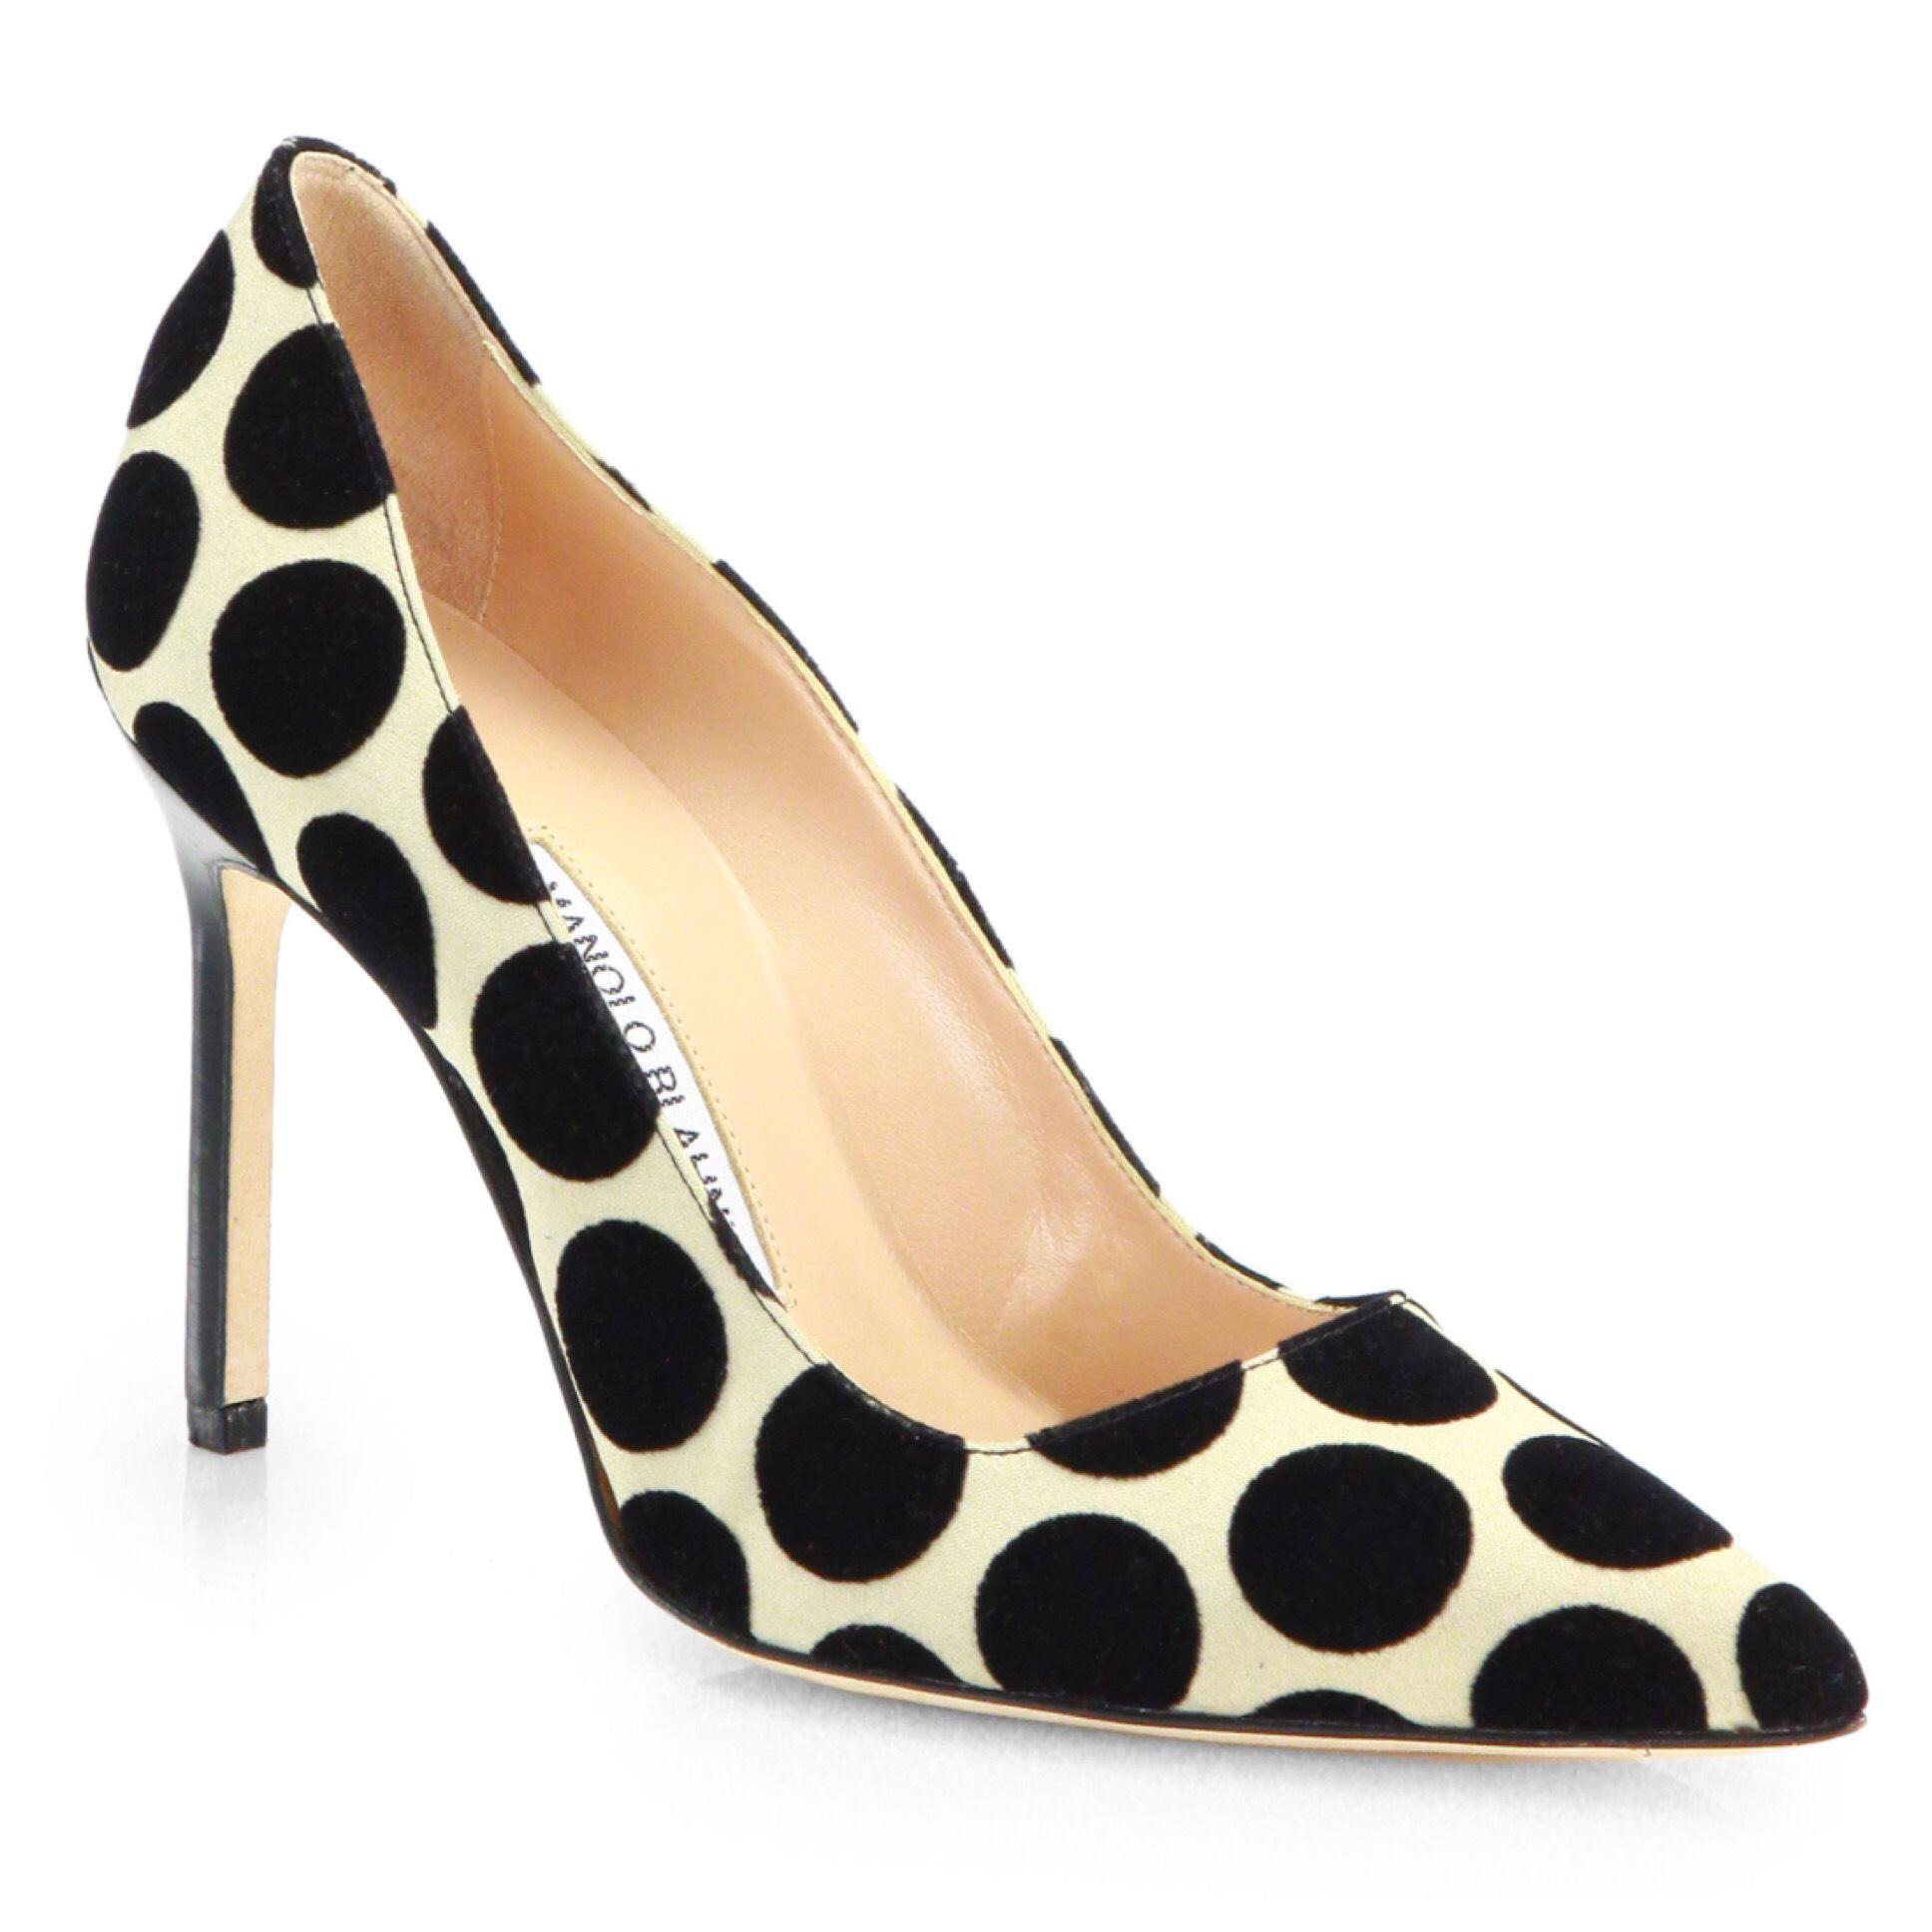 cheap with paypal 2015 new cheap price Manolo Blahnik Polka Dot Pointed-Toe Pumps clearance 2015 new cheap sale get authentic eByFsxX